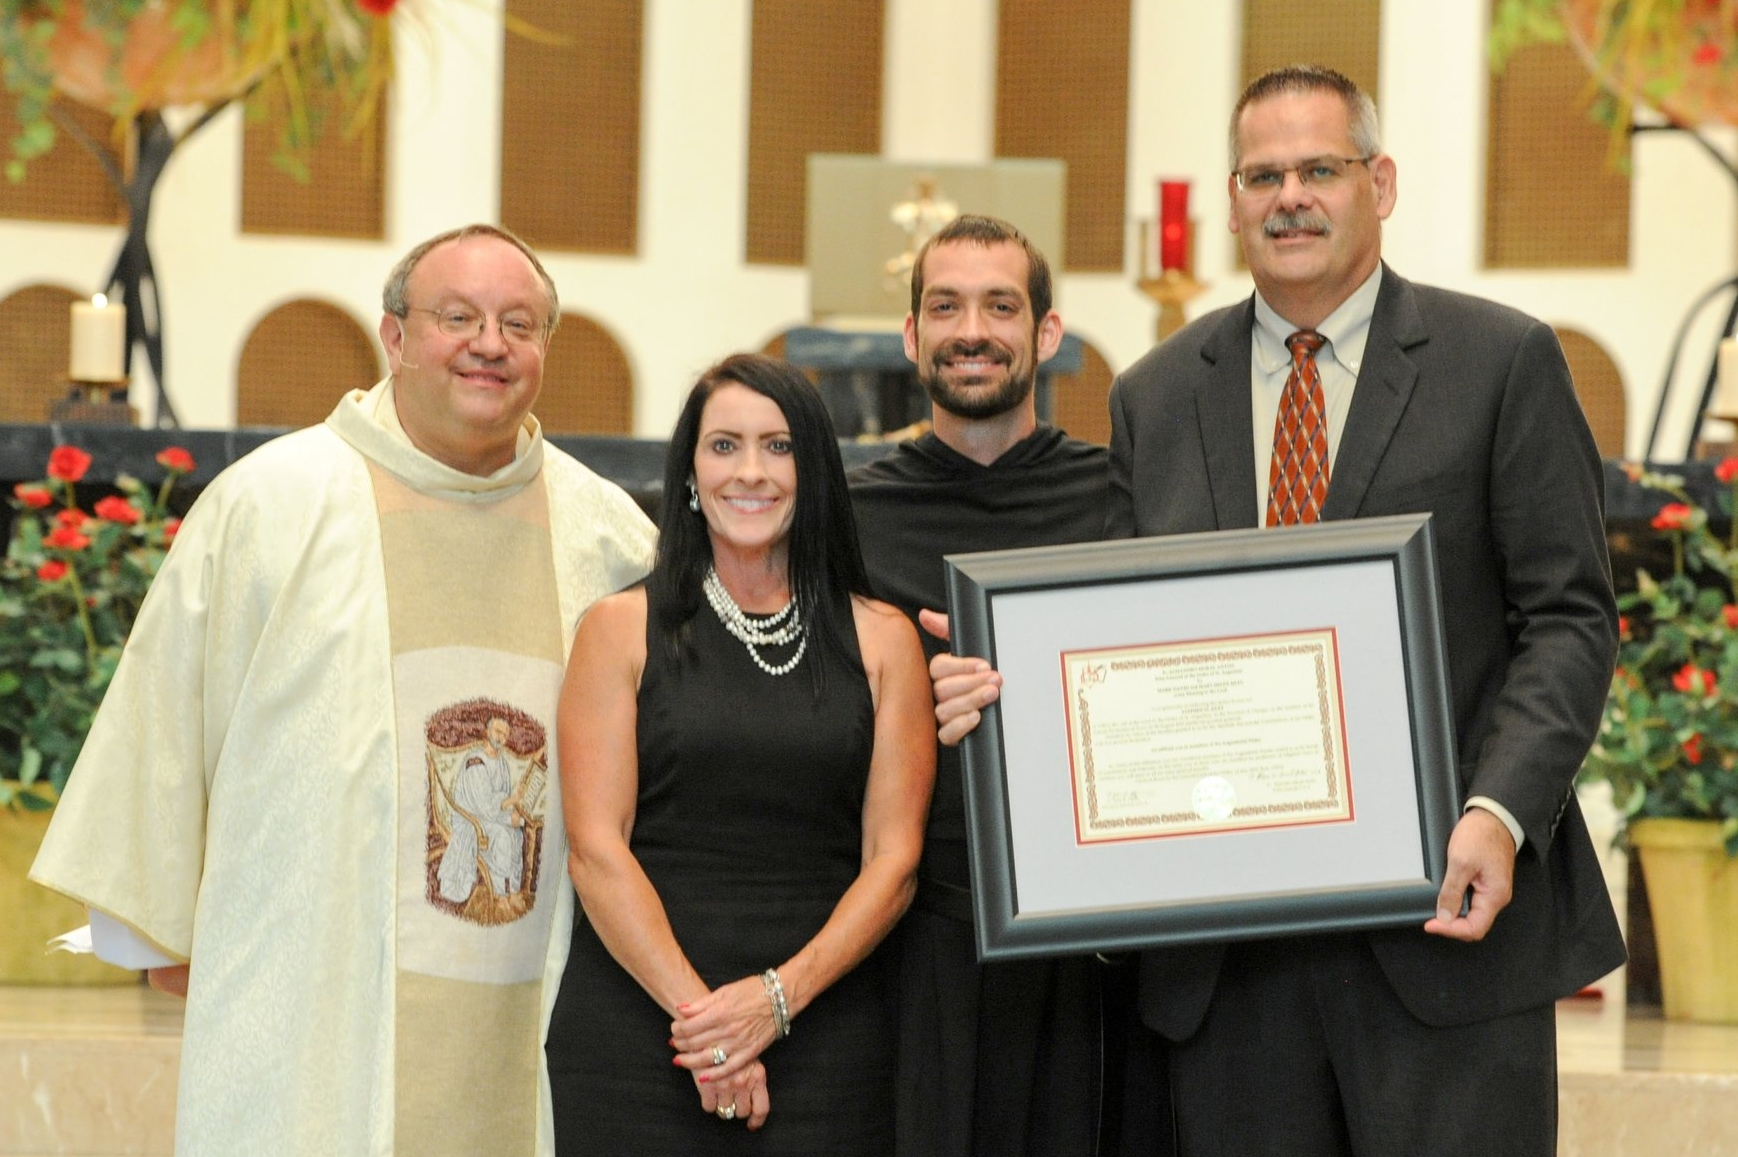 Brother Stephen Isley, O.S.A., with his Provincial and newly affiliated parents